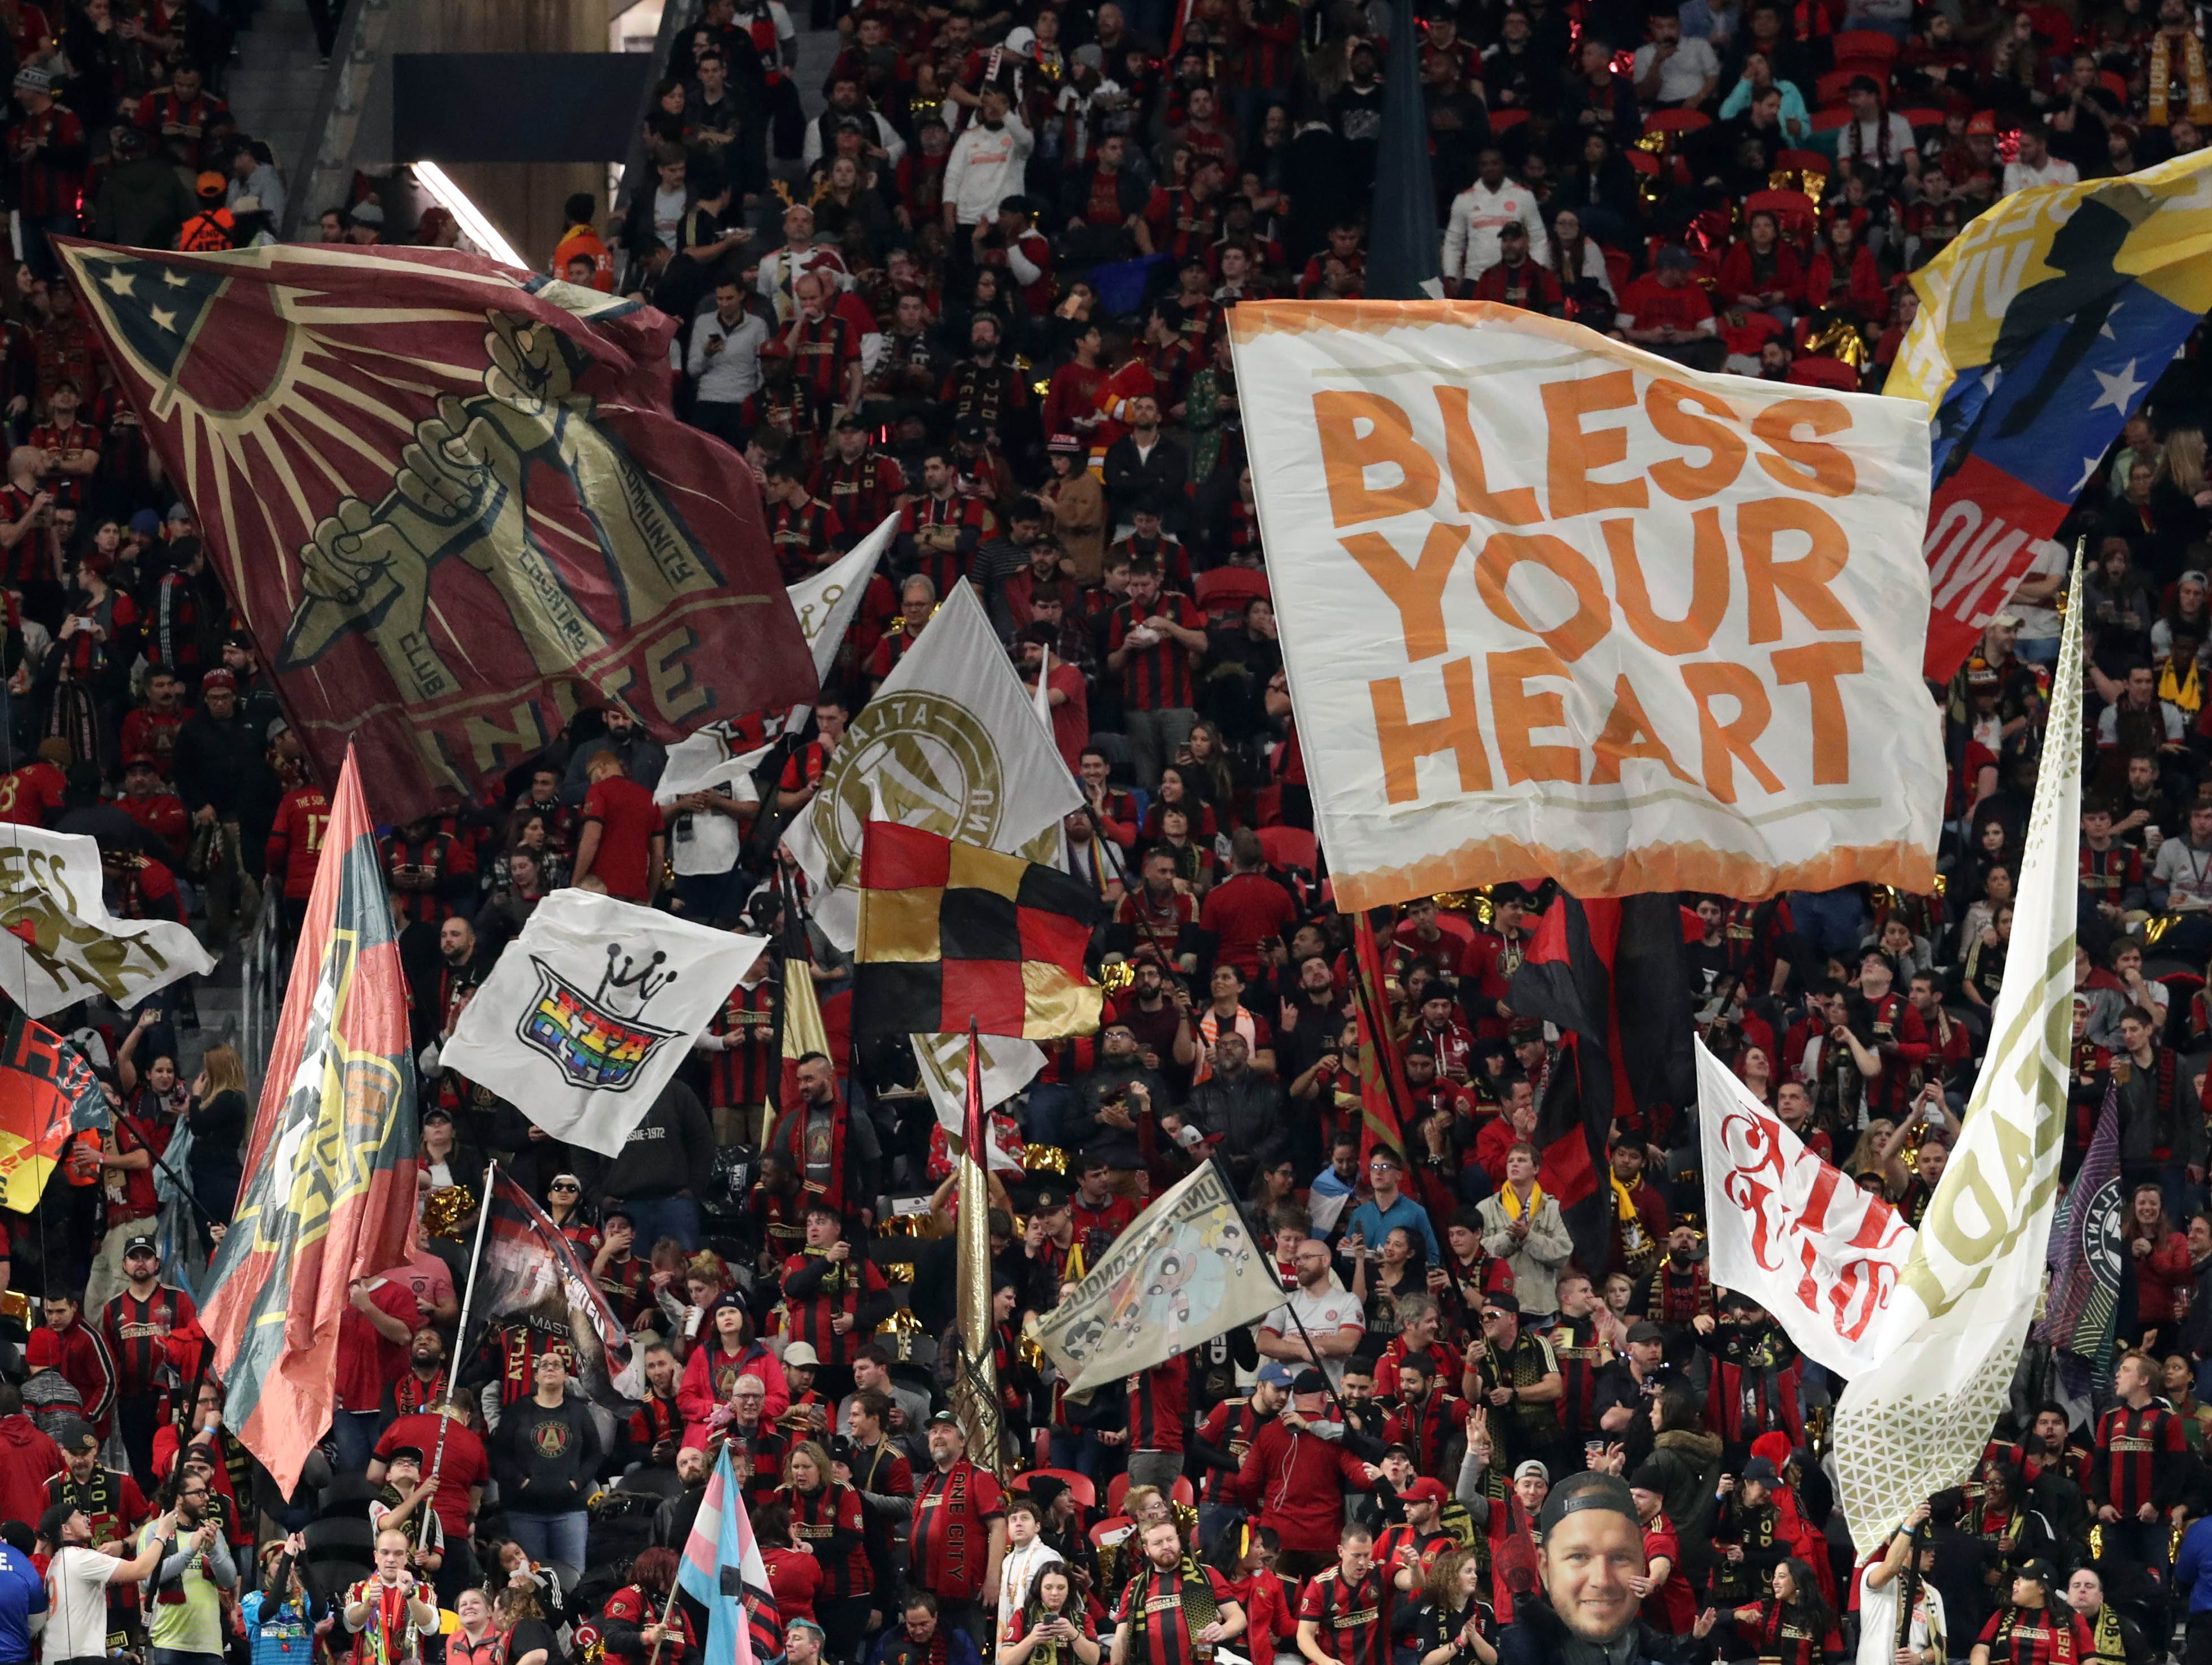 Atlanta United fans wave flags in the stands prior to the 2018 MLS Cup championship game.